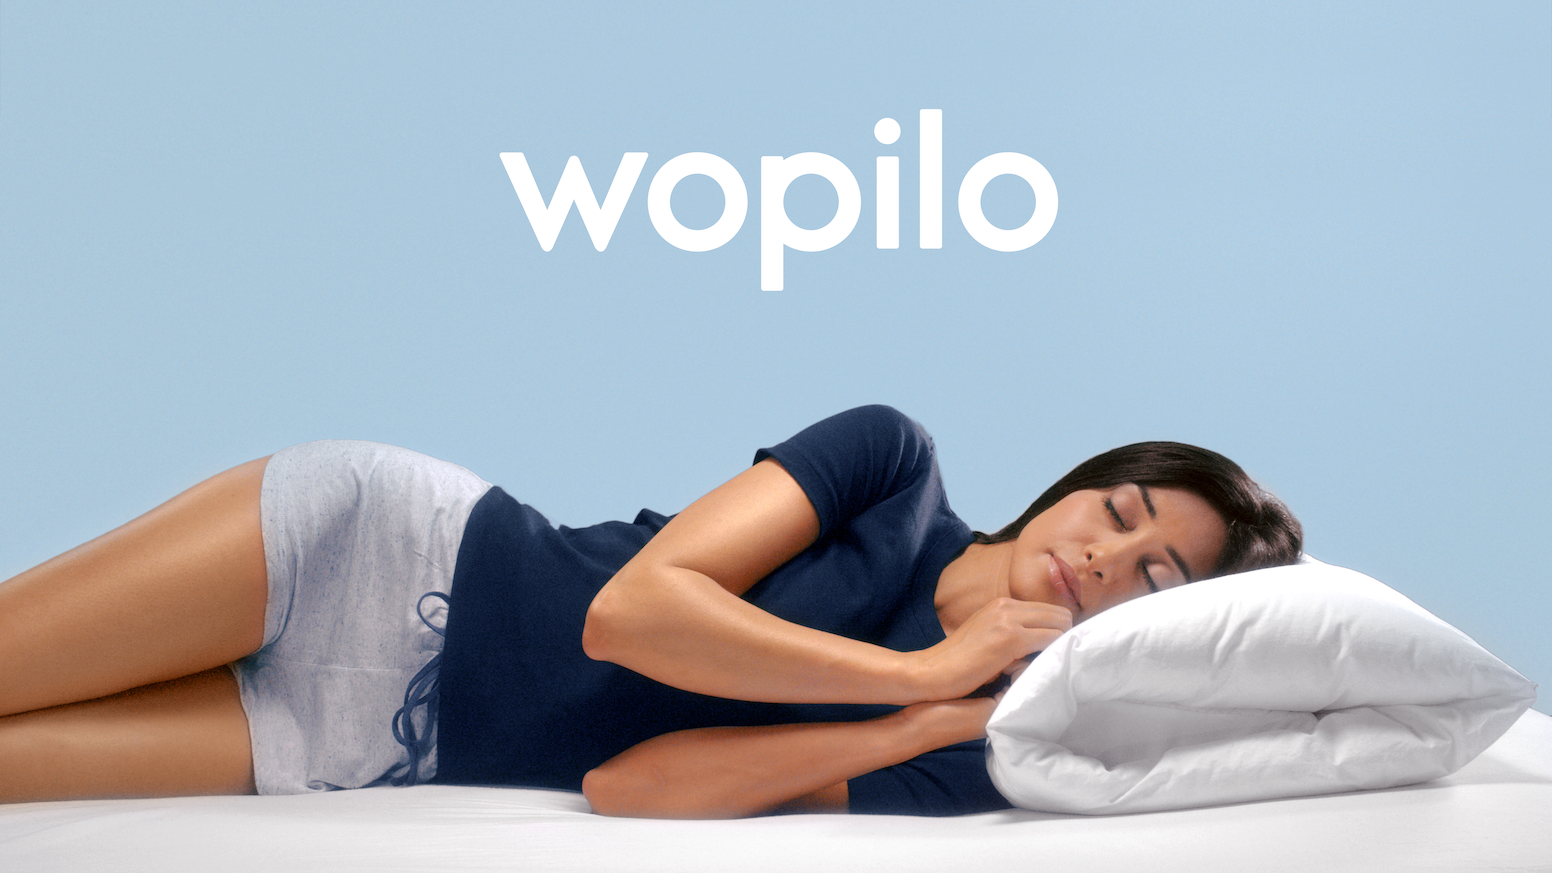 The only pillow that is comfortable, ergonomic and allows you to choose your comfort level. Meet Wopilo, your new sleeping partner!